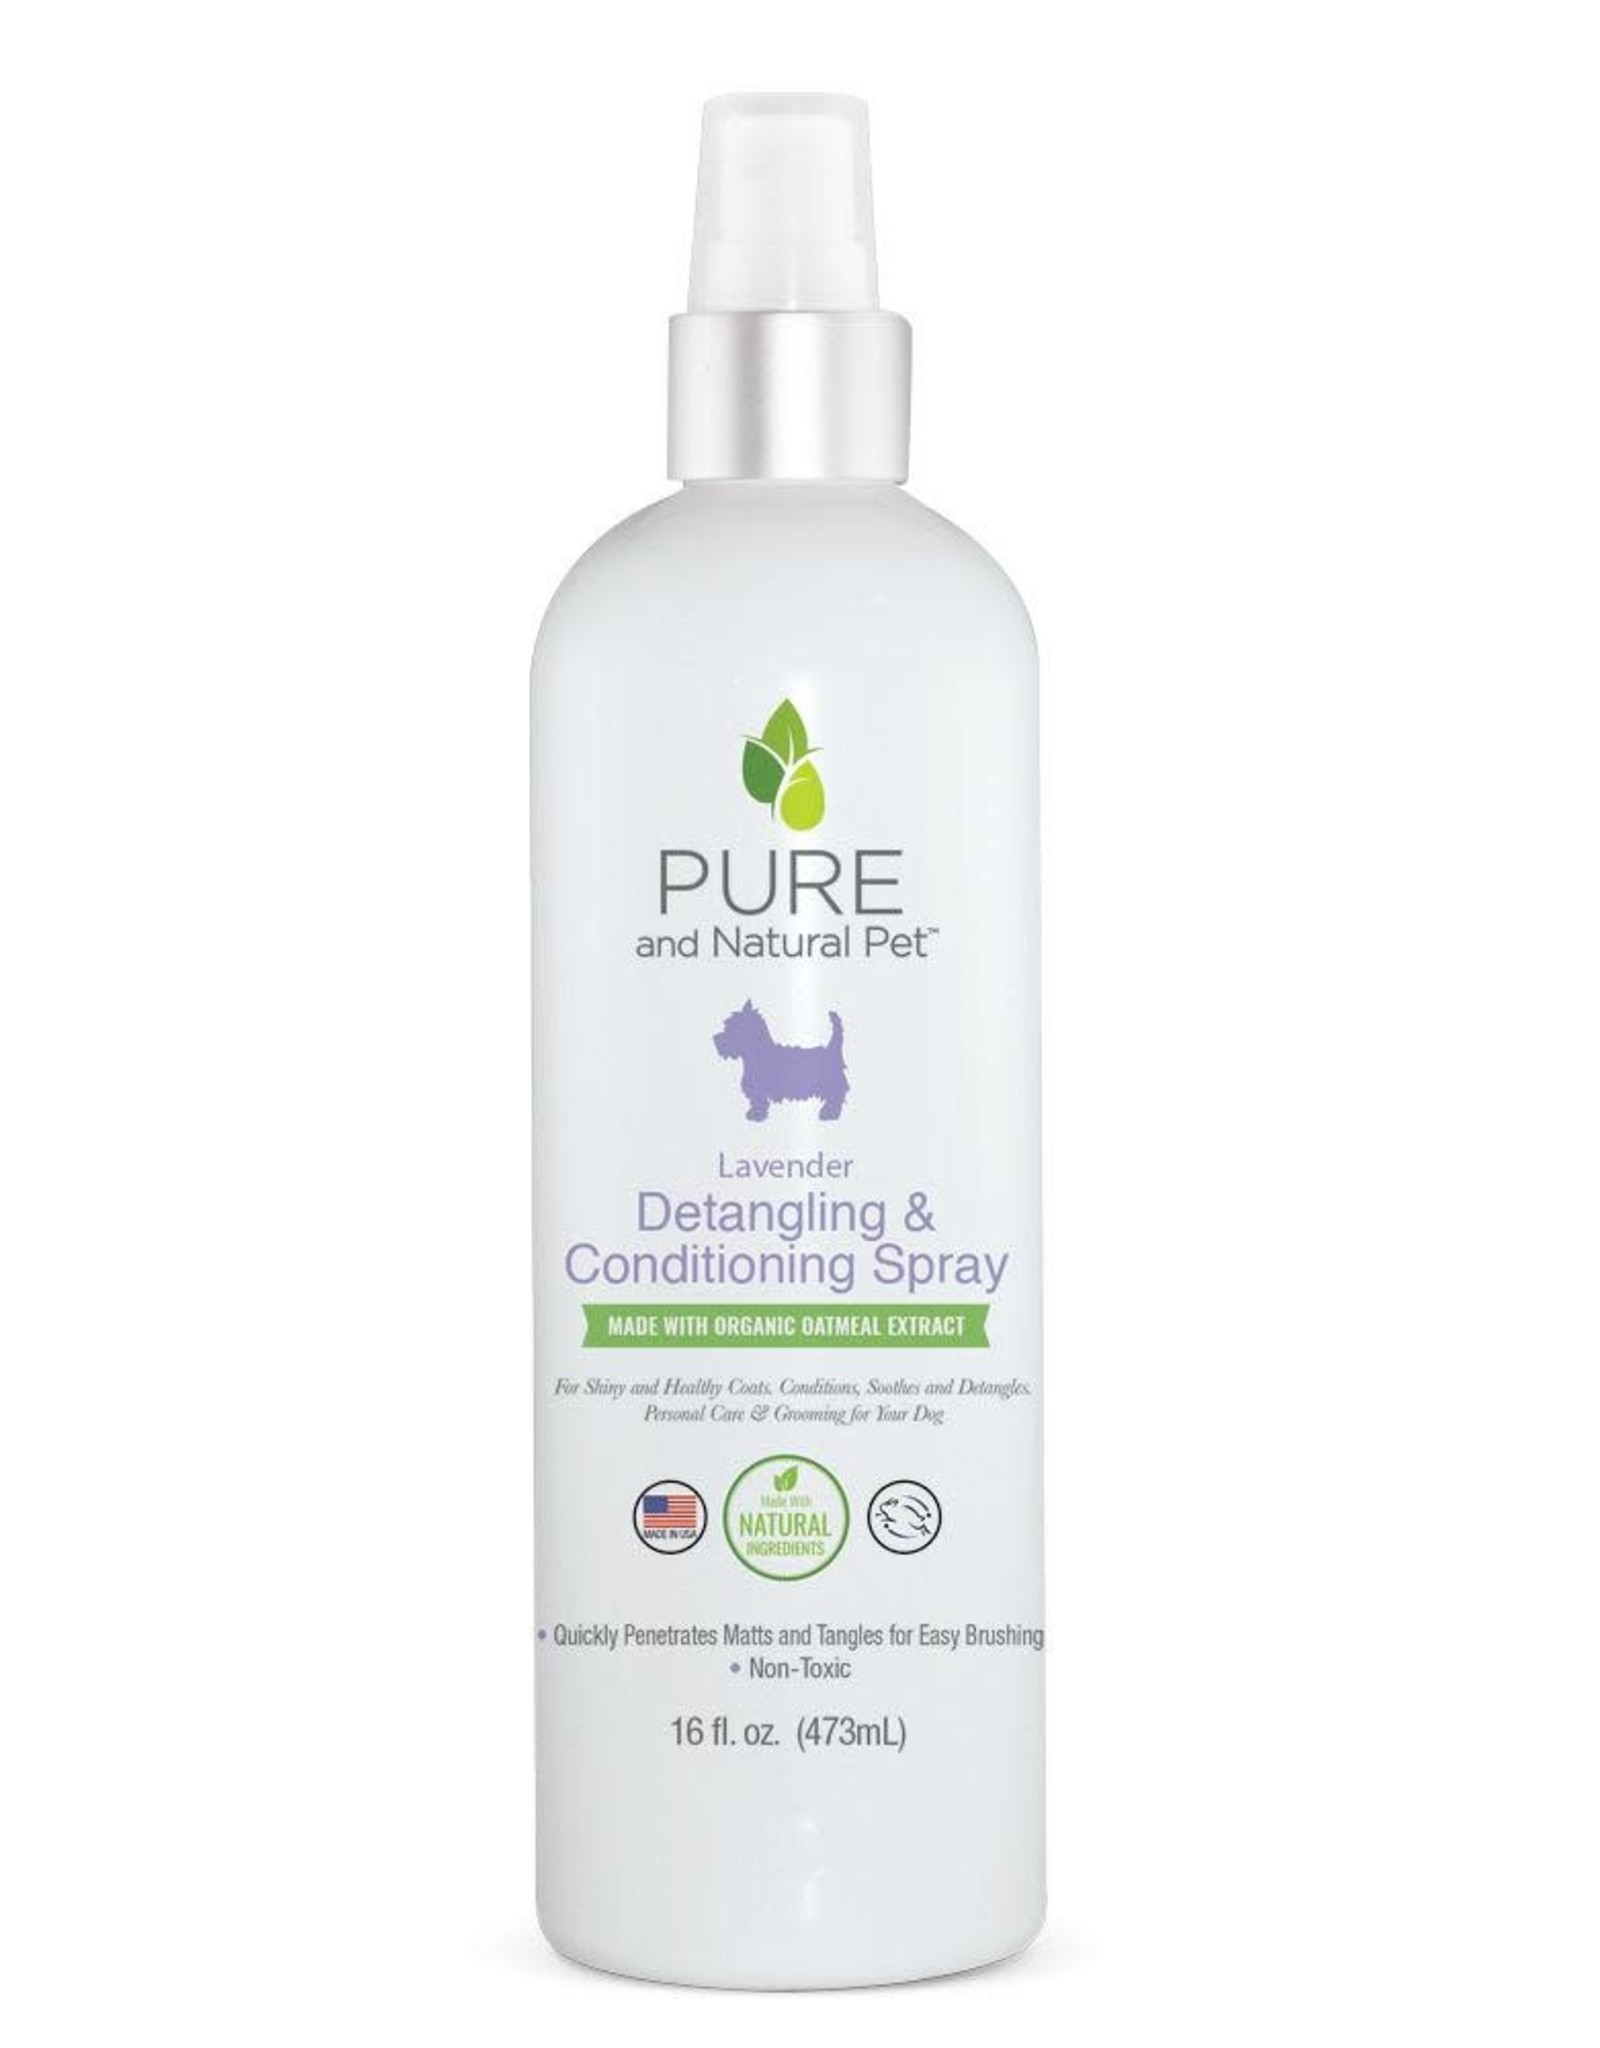 Pure and Natural Pet Detangling & Conditioning Spray